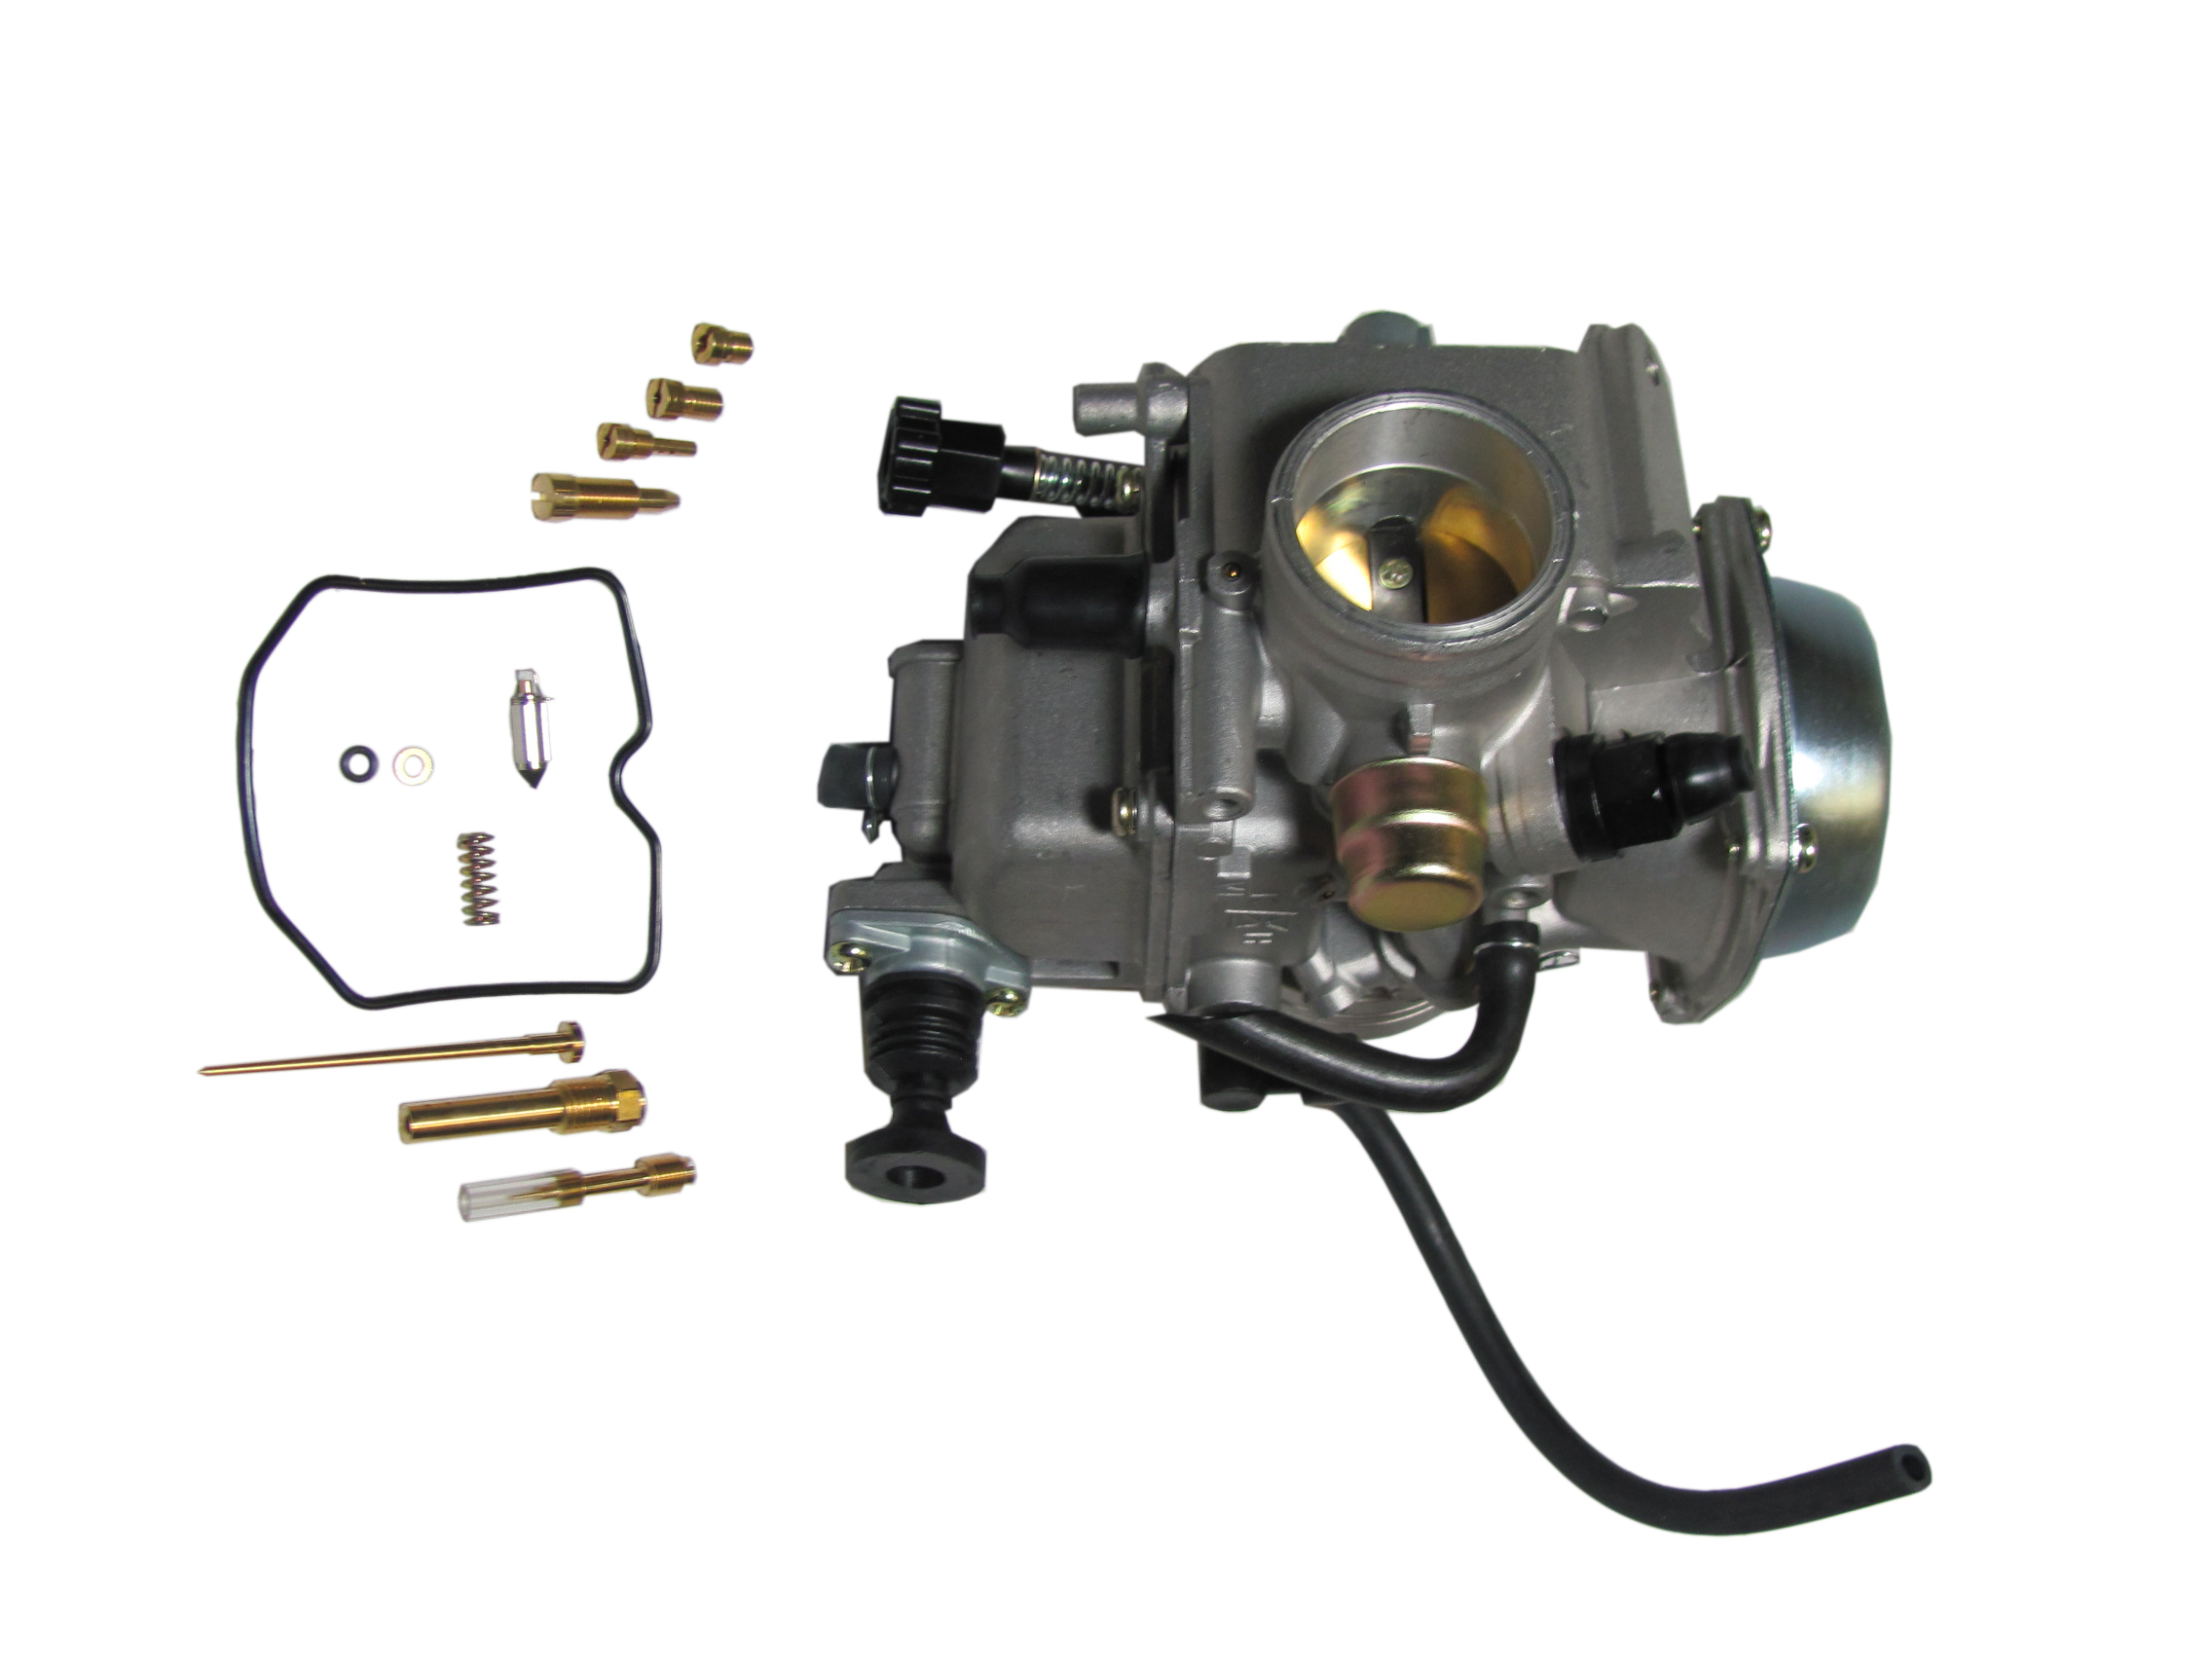 322430705556 together with 93 Honda Accord Starter Relay Location together with 181772153426 moreover Diagram Of Gas Lines On 1995 Polaris 300 4x4 Xplorer further 131776095207. on polaris sportsman 400 parts list